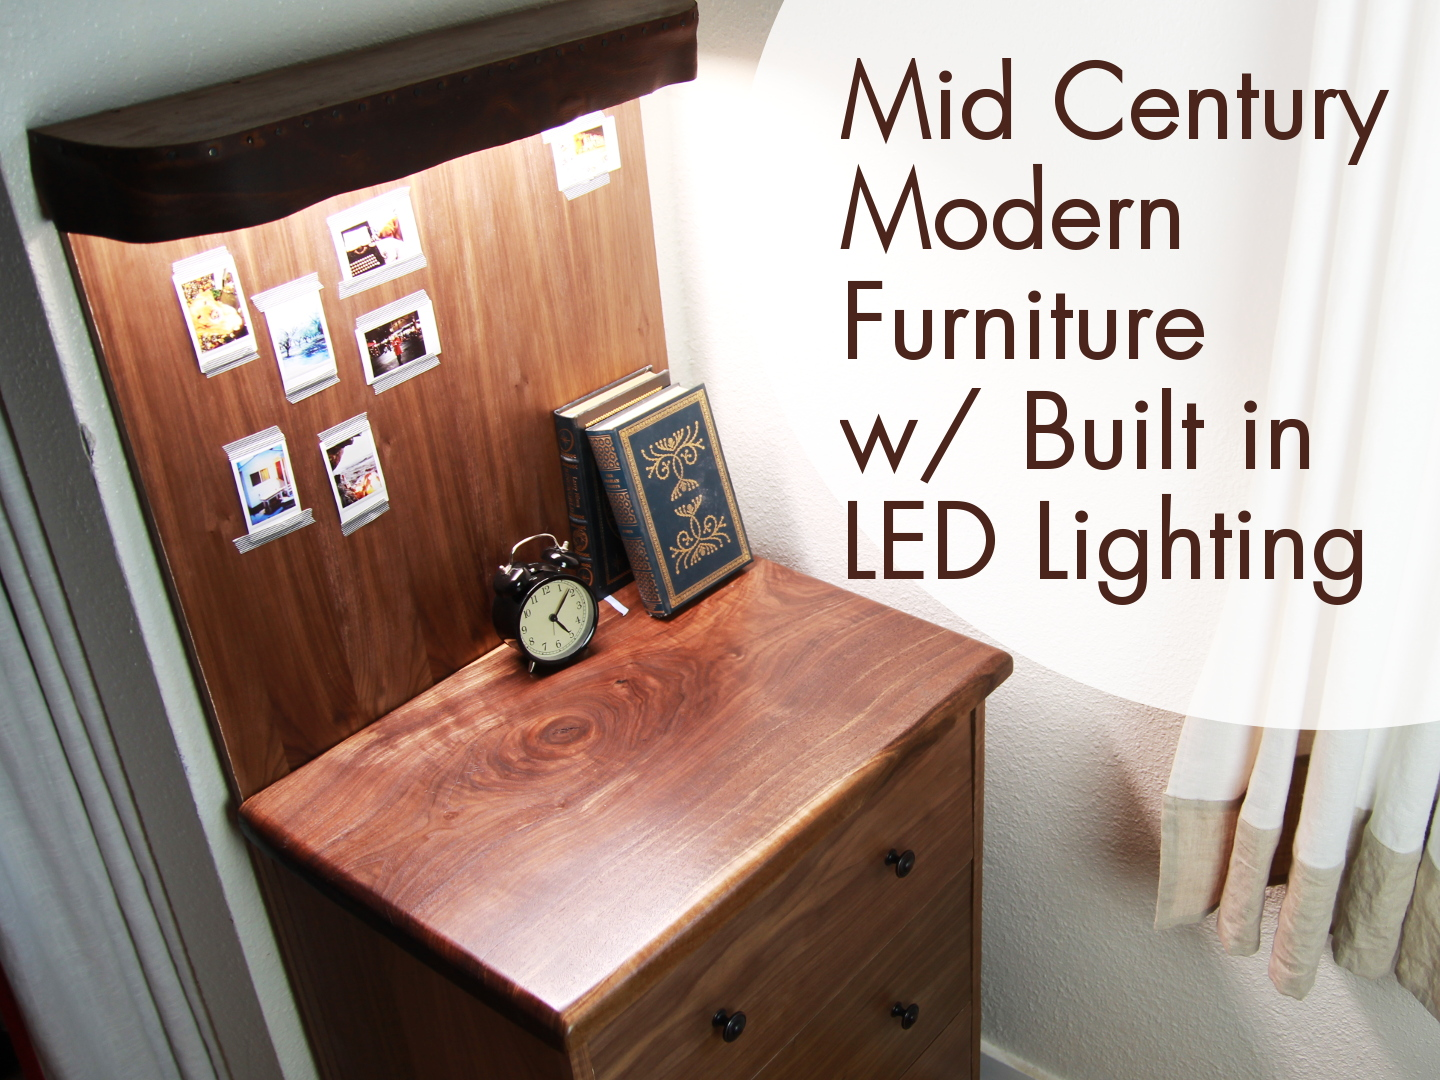 Picture of Mid Century Modern Storage Table W/ Built-in LED Lighting